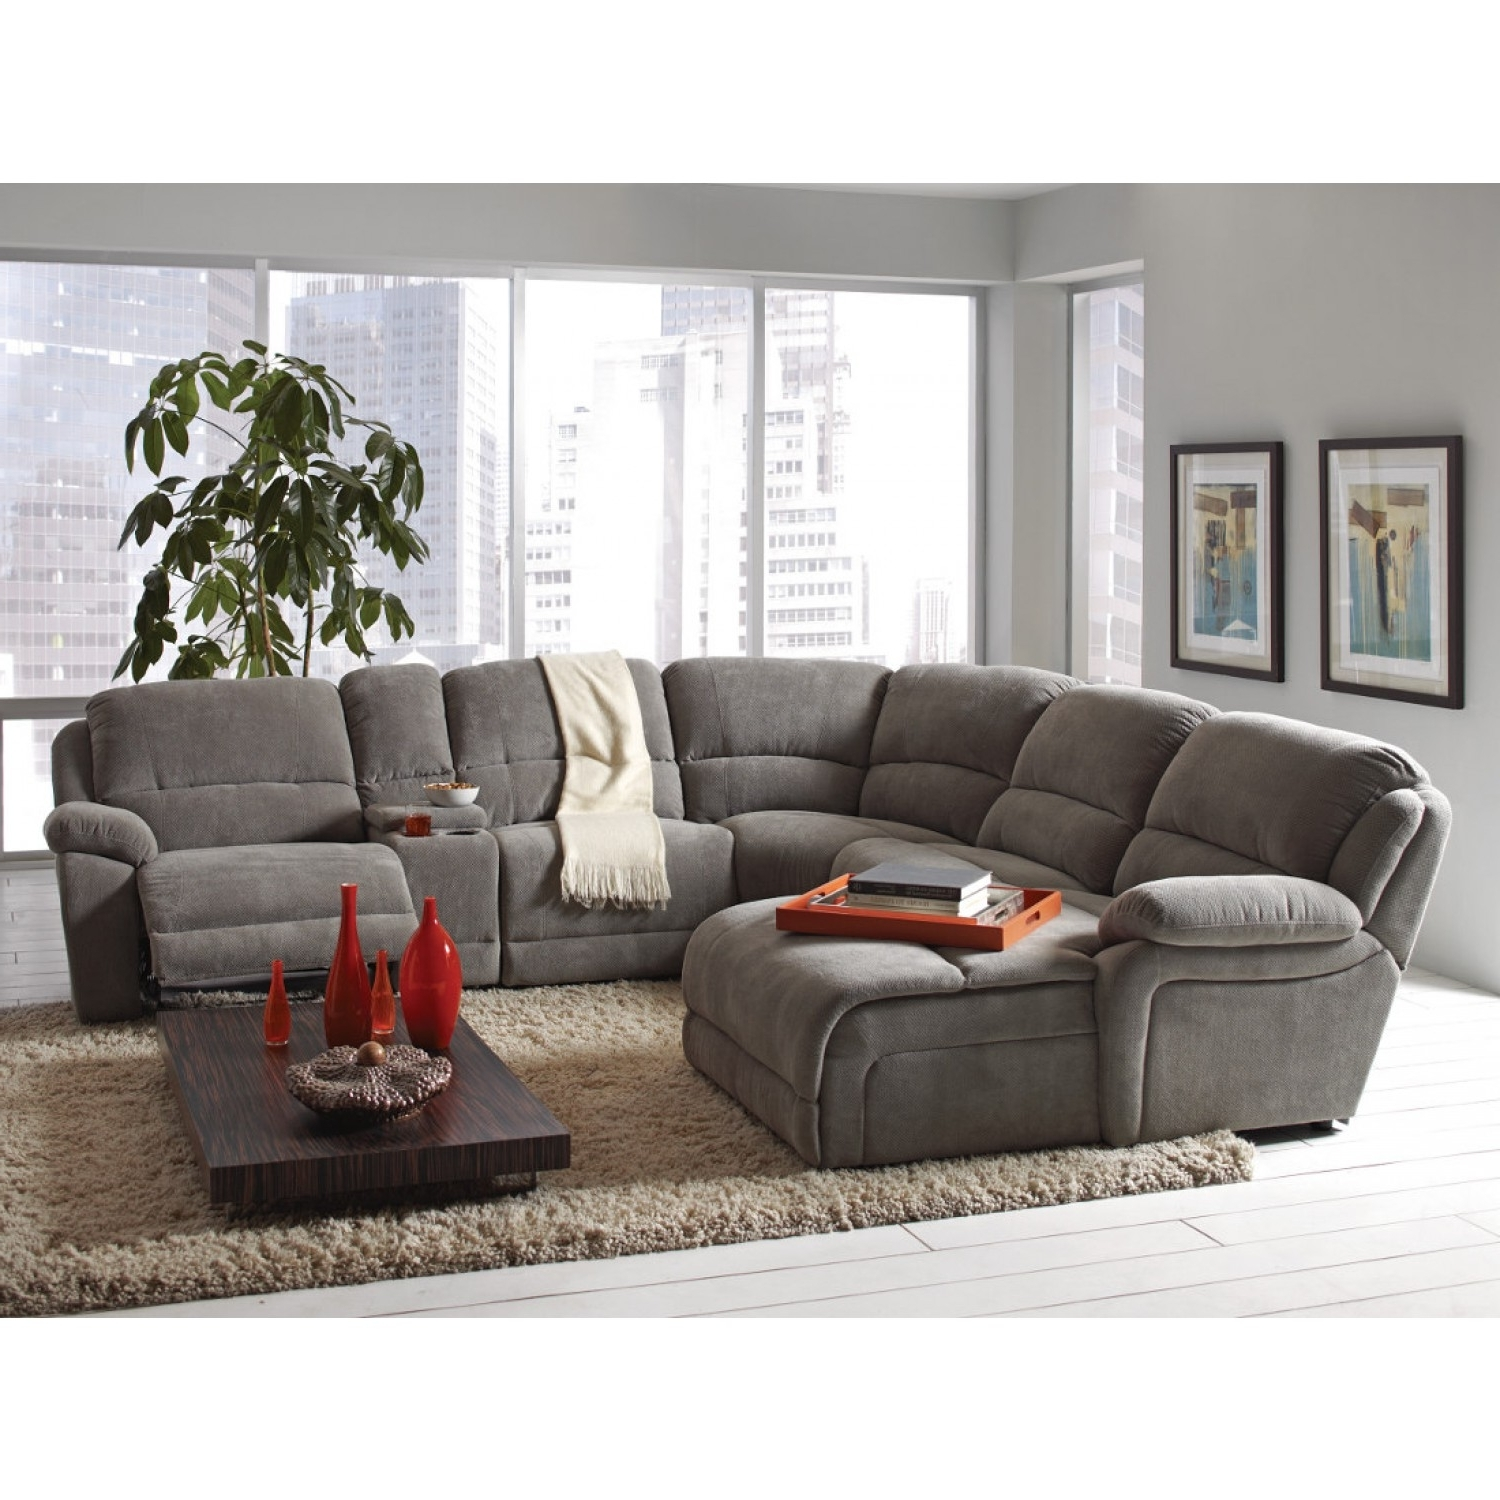 Widely Used Coaster Mackenzie Silver 6 Piece Reclining Sectional Sofa With Throughout Pittsburgh Sectional Sofas (View 20 of 20)